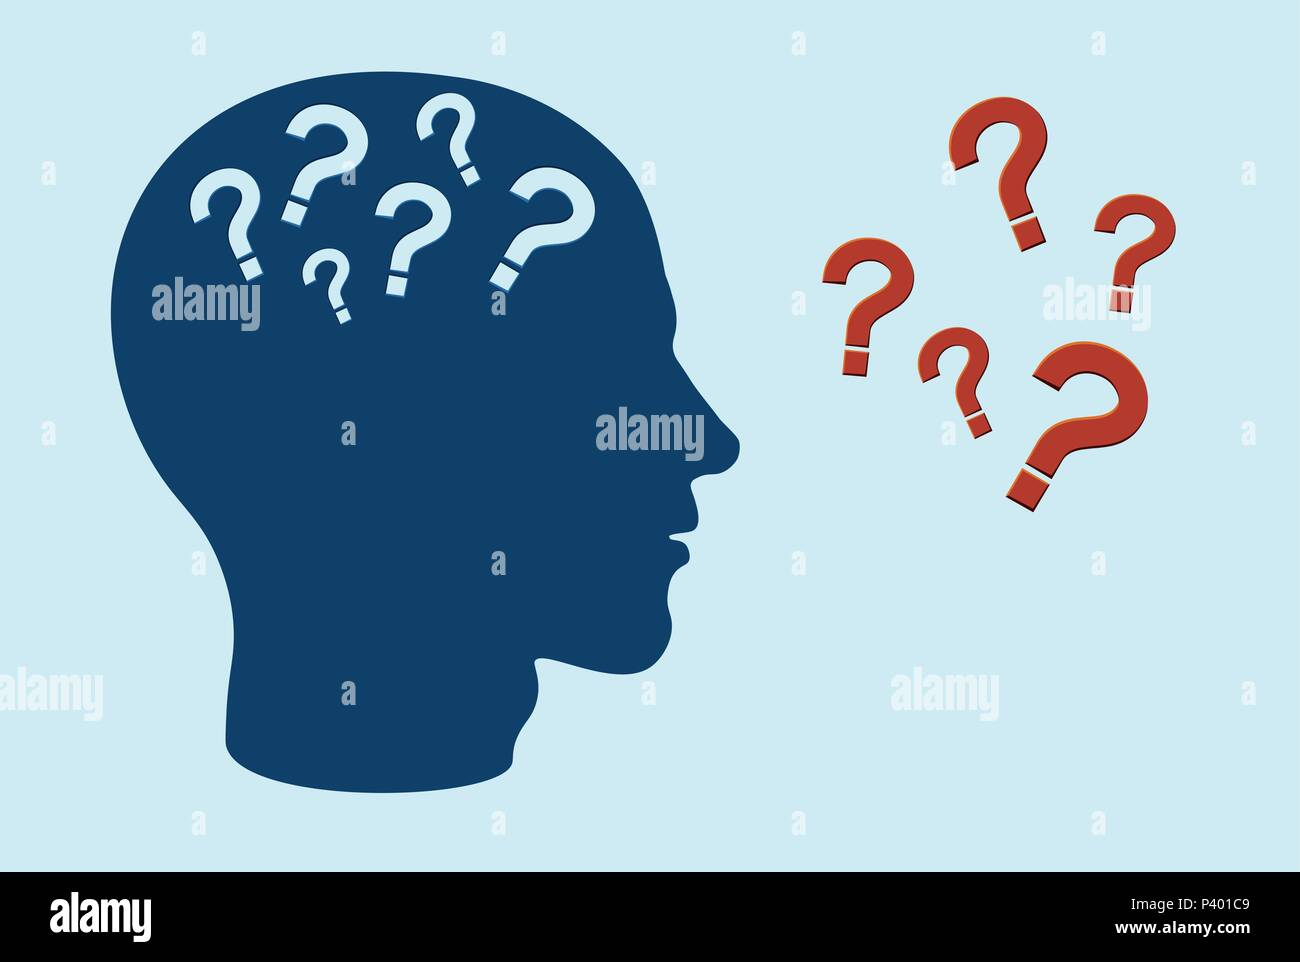 Cognitive function impairment concept. Side profile of human head with question marks - Stock Image